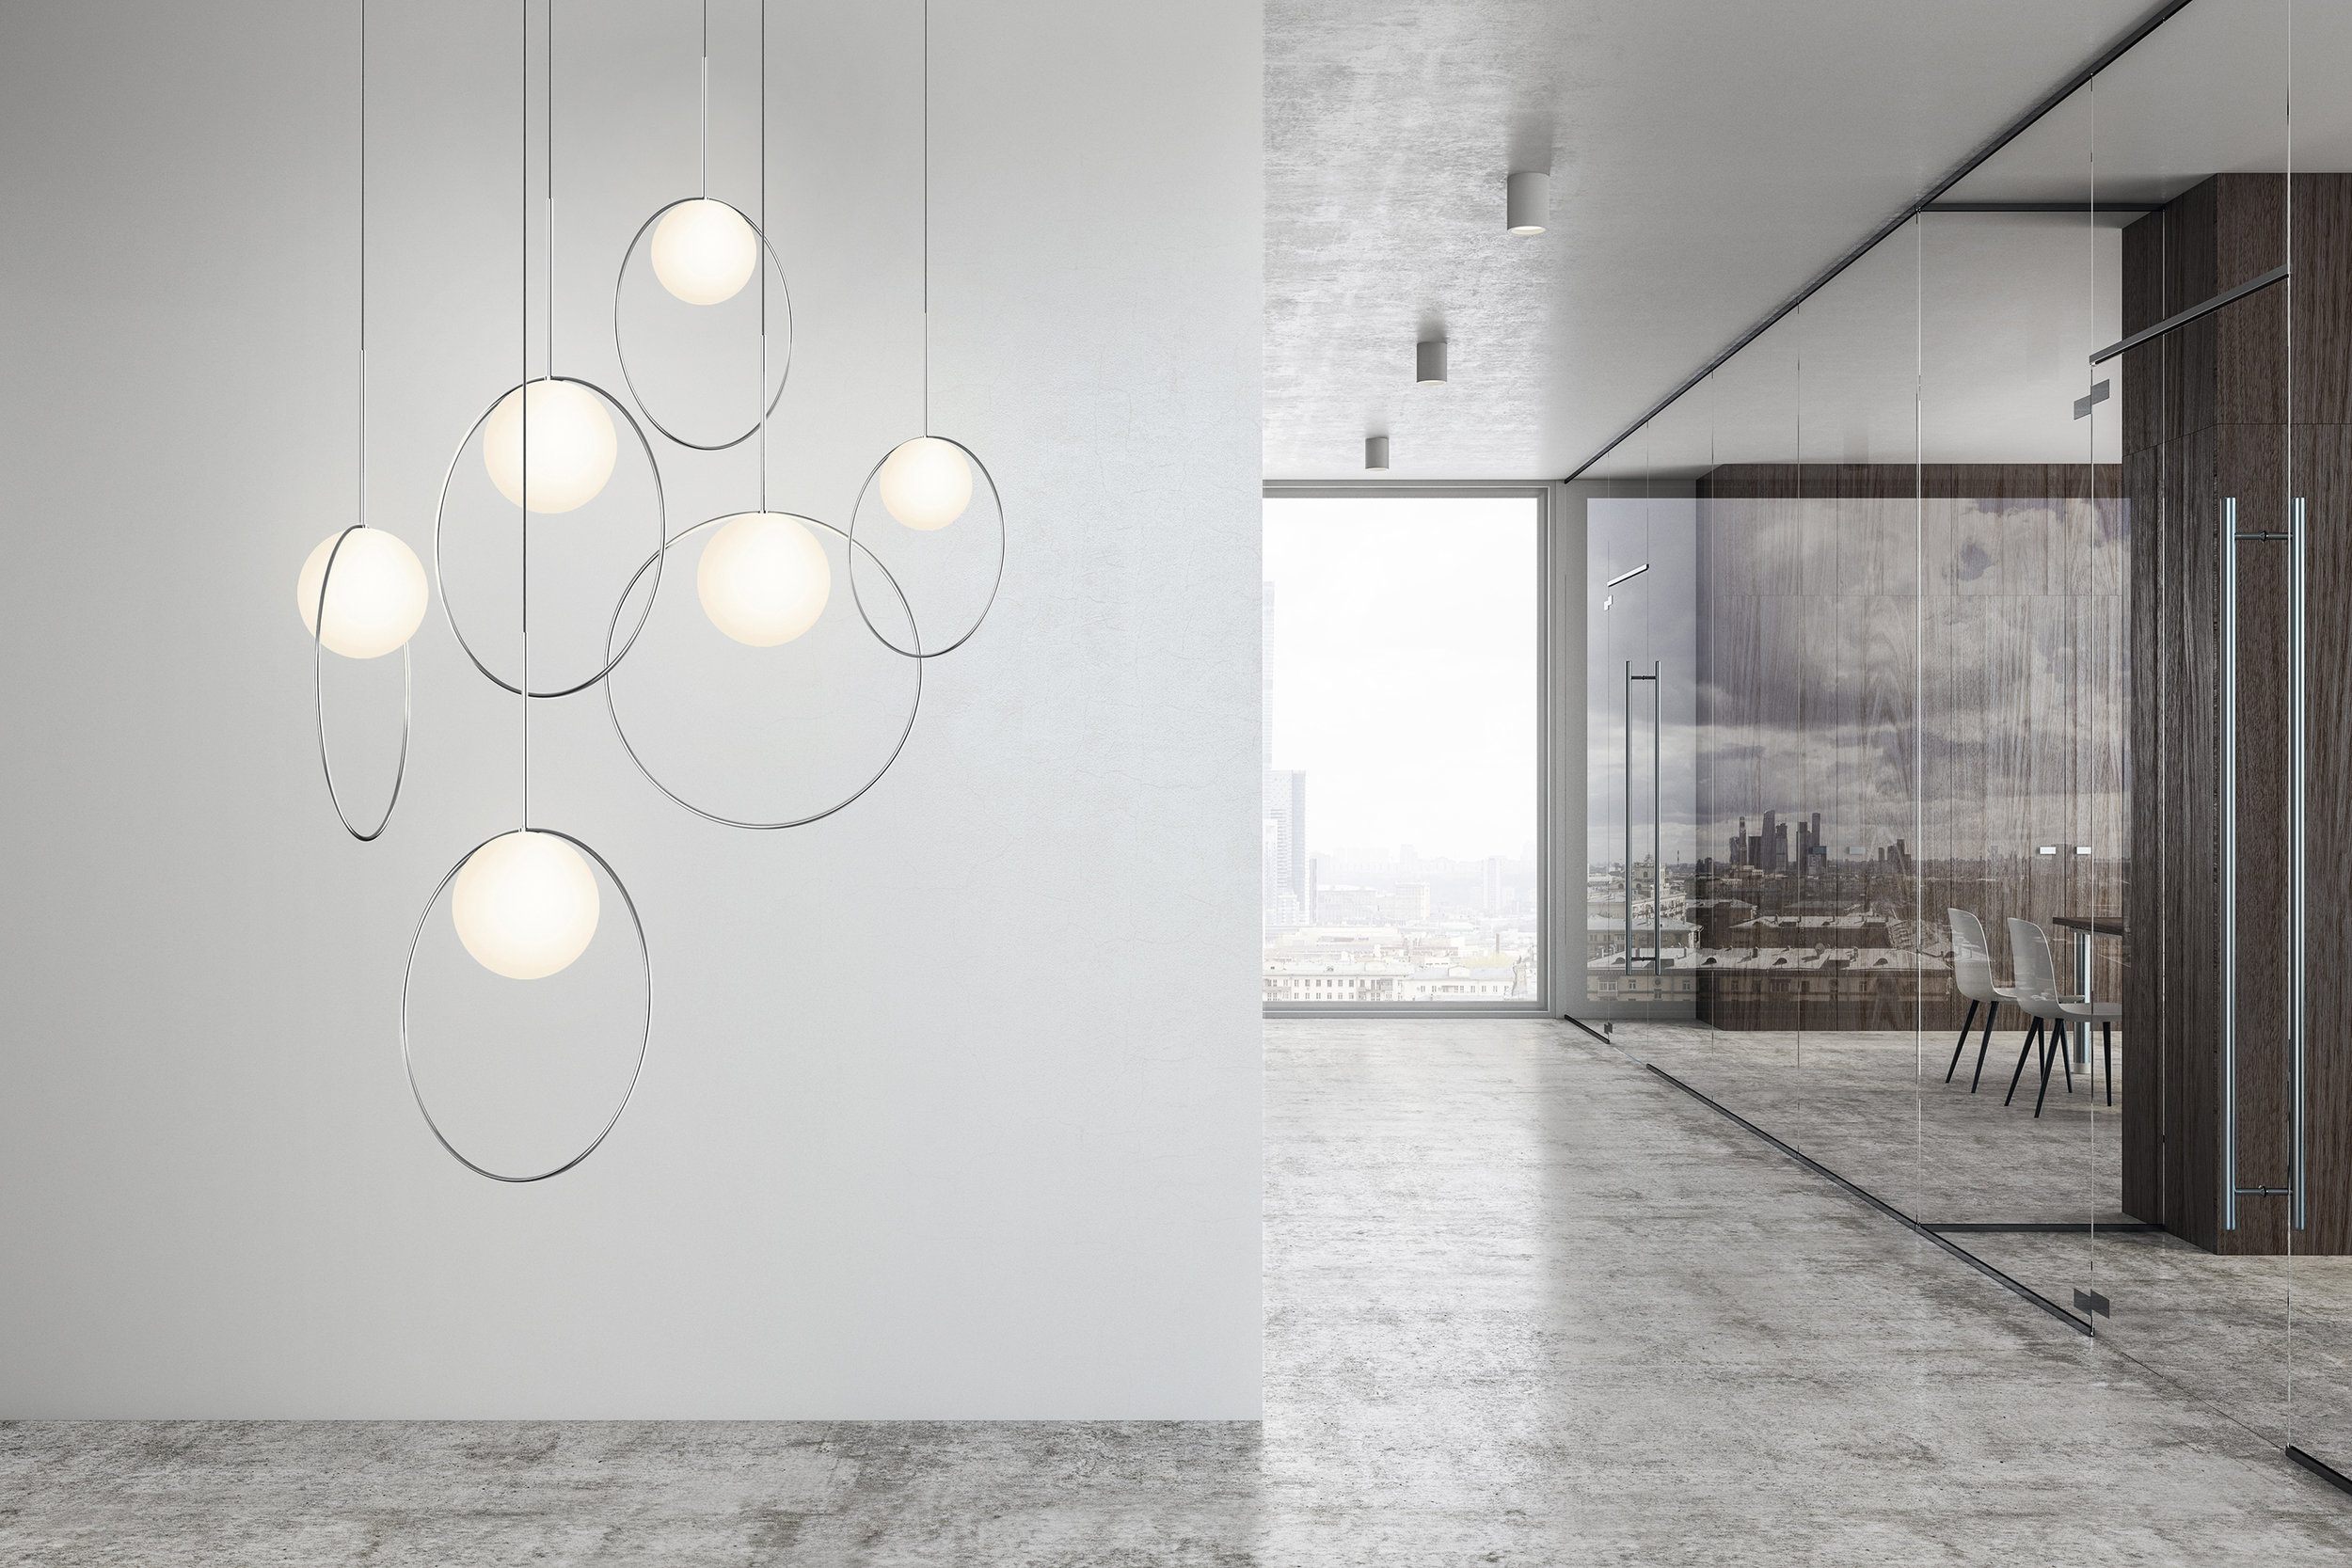 bola-halo-pendant-chandelier-environmental-office-wall-3k_download.JPG